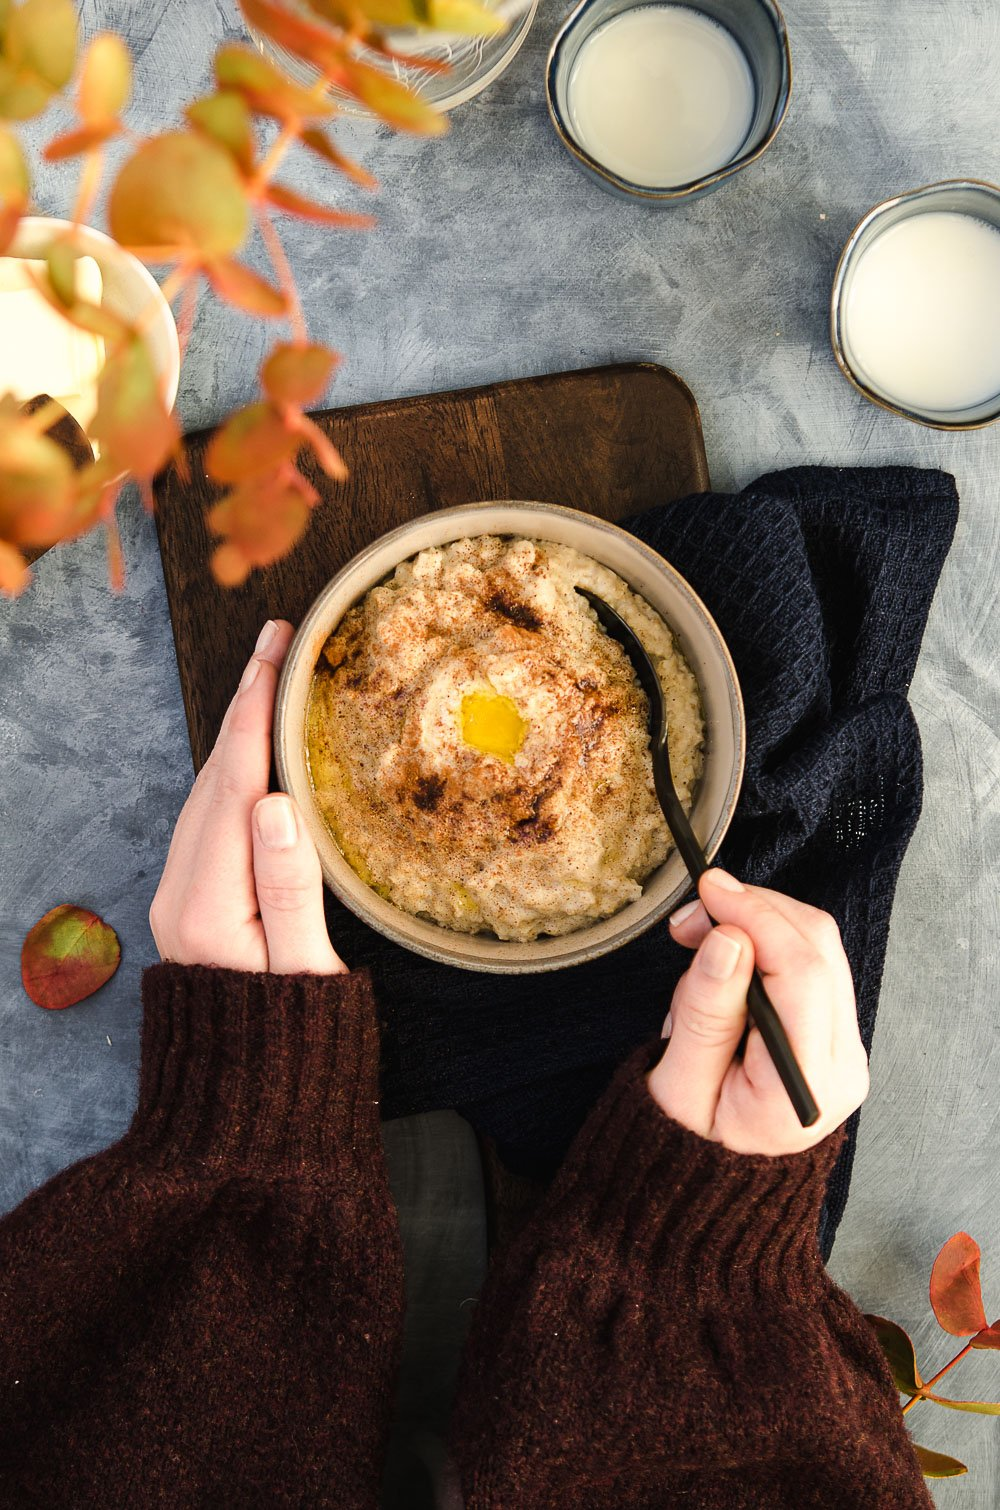 How to make the perfect oatmeal porridge